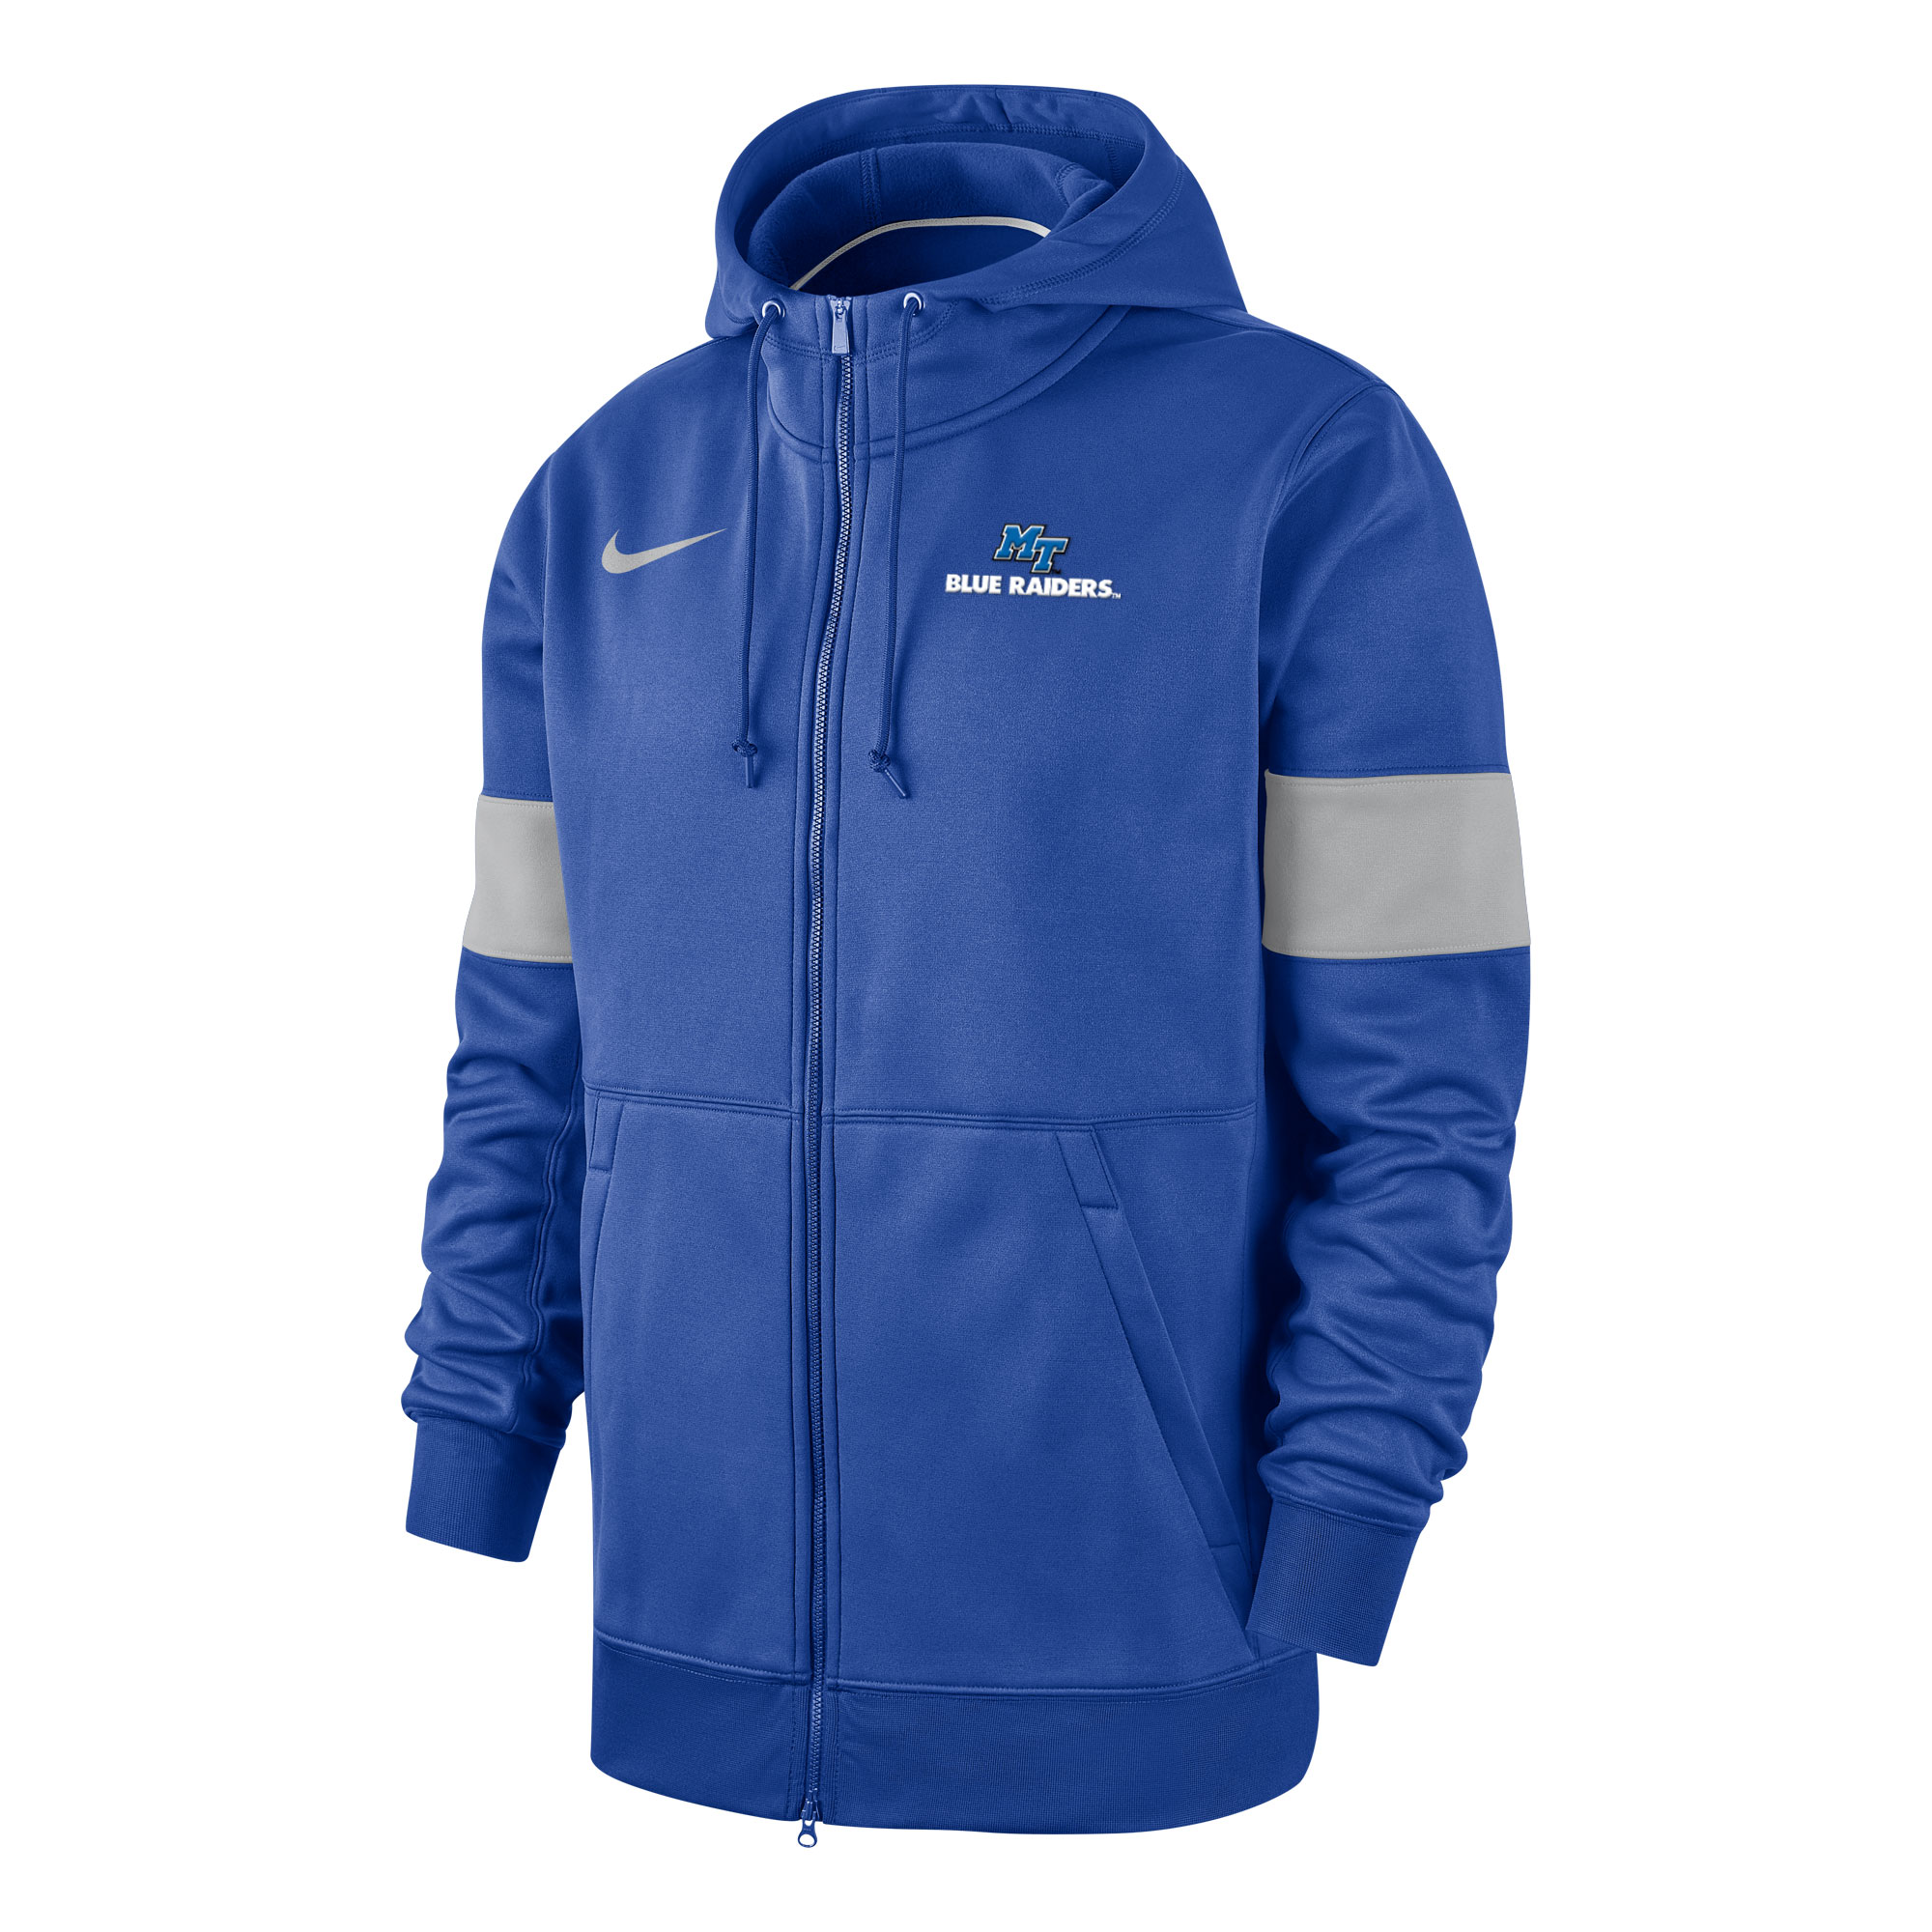 MT Blue Raiders Therma Full Zip Nike® Hoody